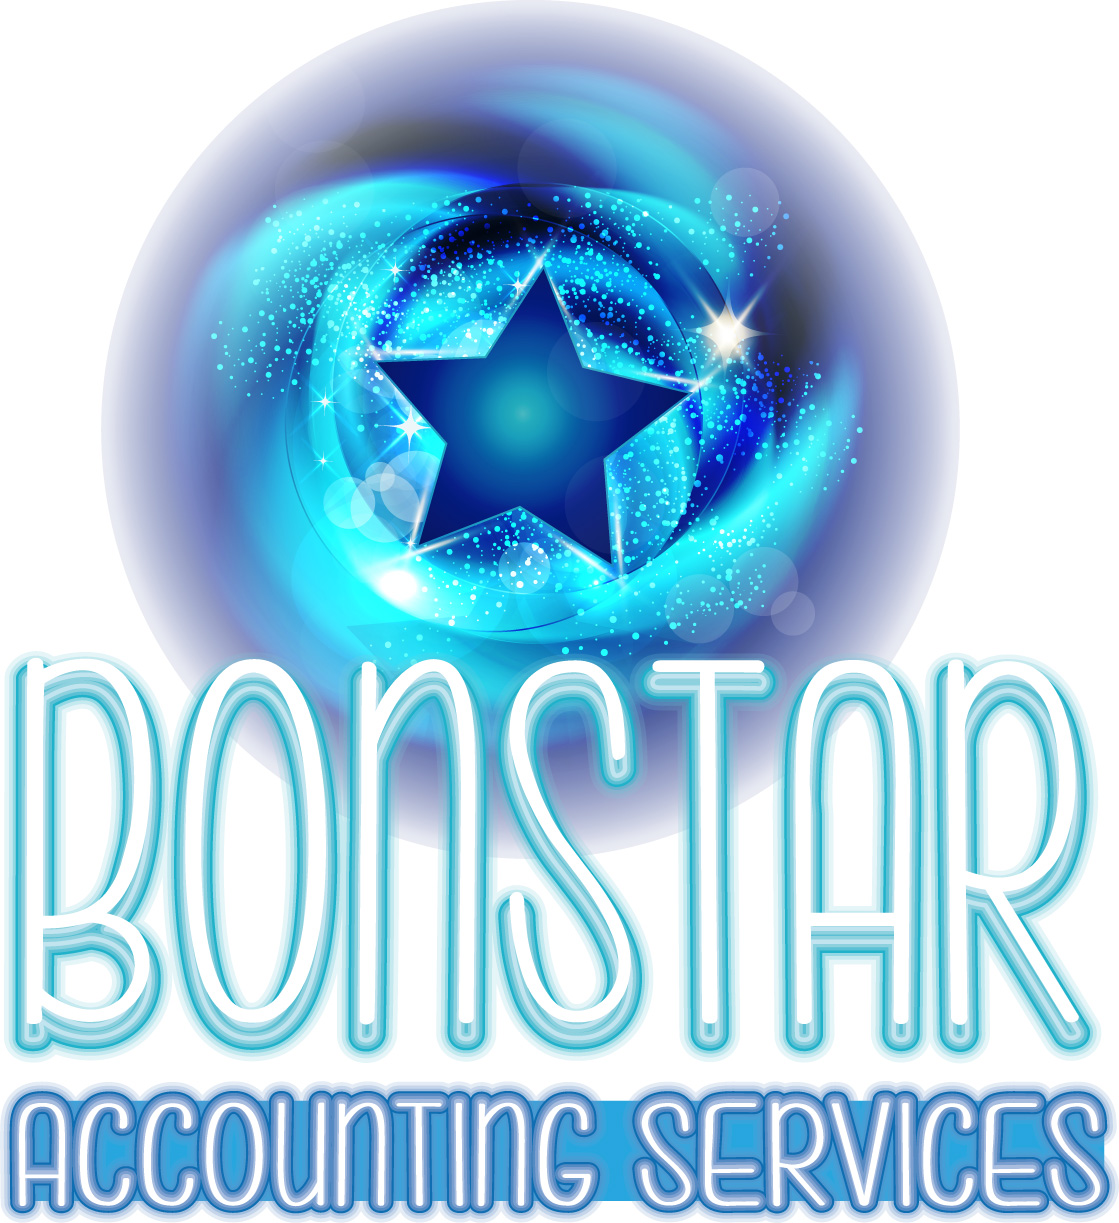 BonstarLogo (Use this one).jpg